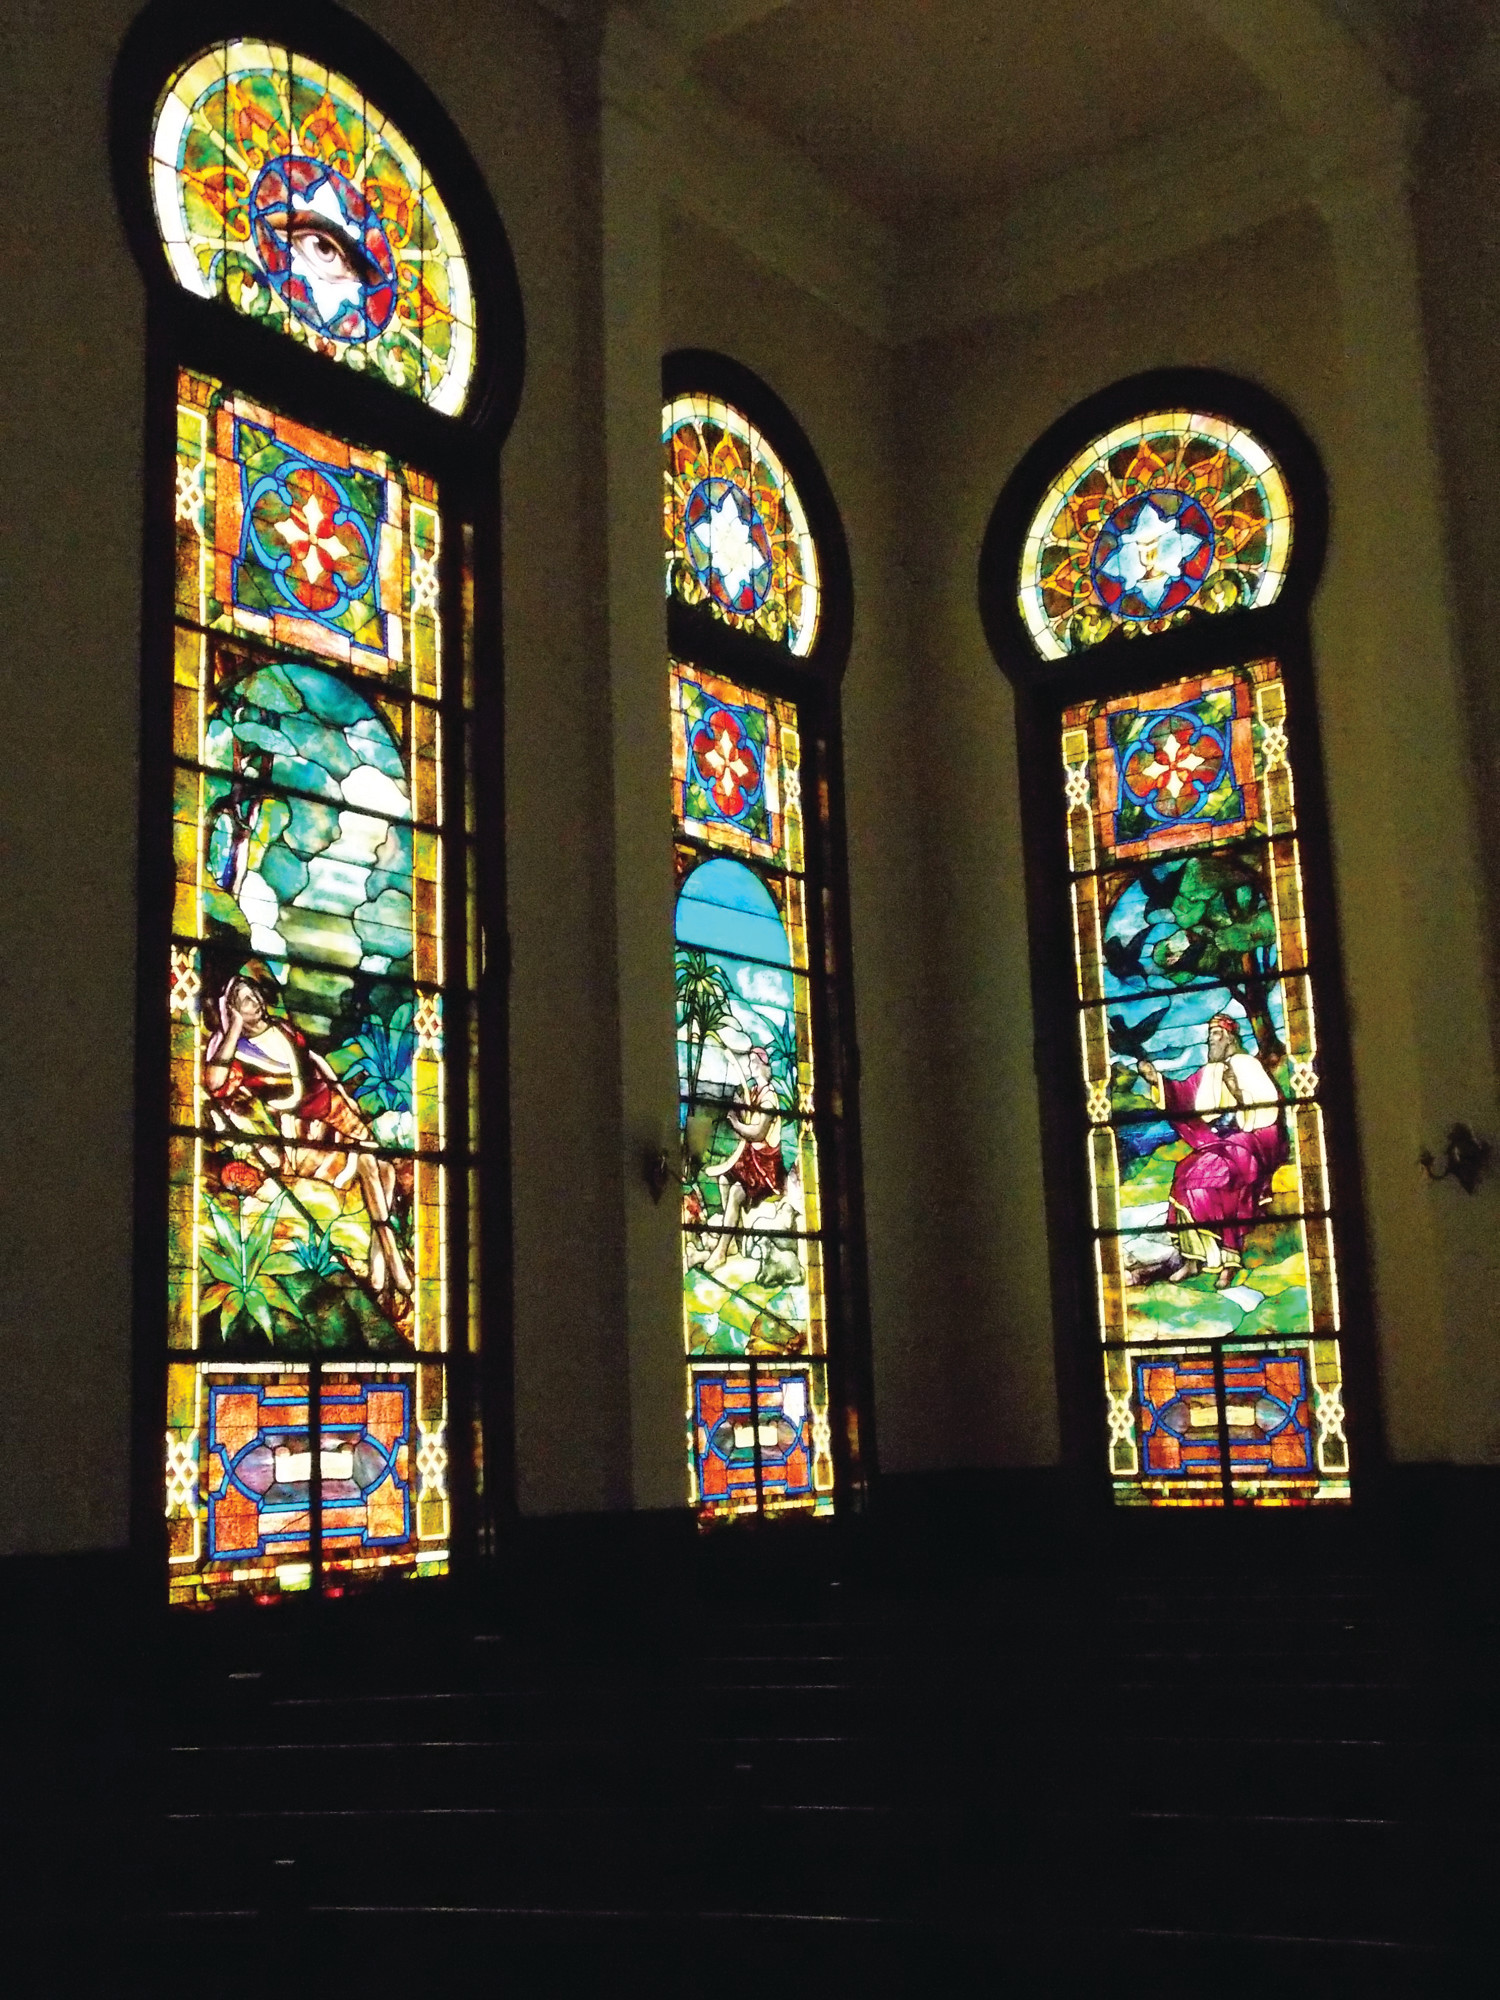 This interior view shows some of the temple windows made of drapery glass, a special technique which shows 3-D effects. Temple Sinai is on Church Street and was built in 1913.